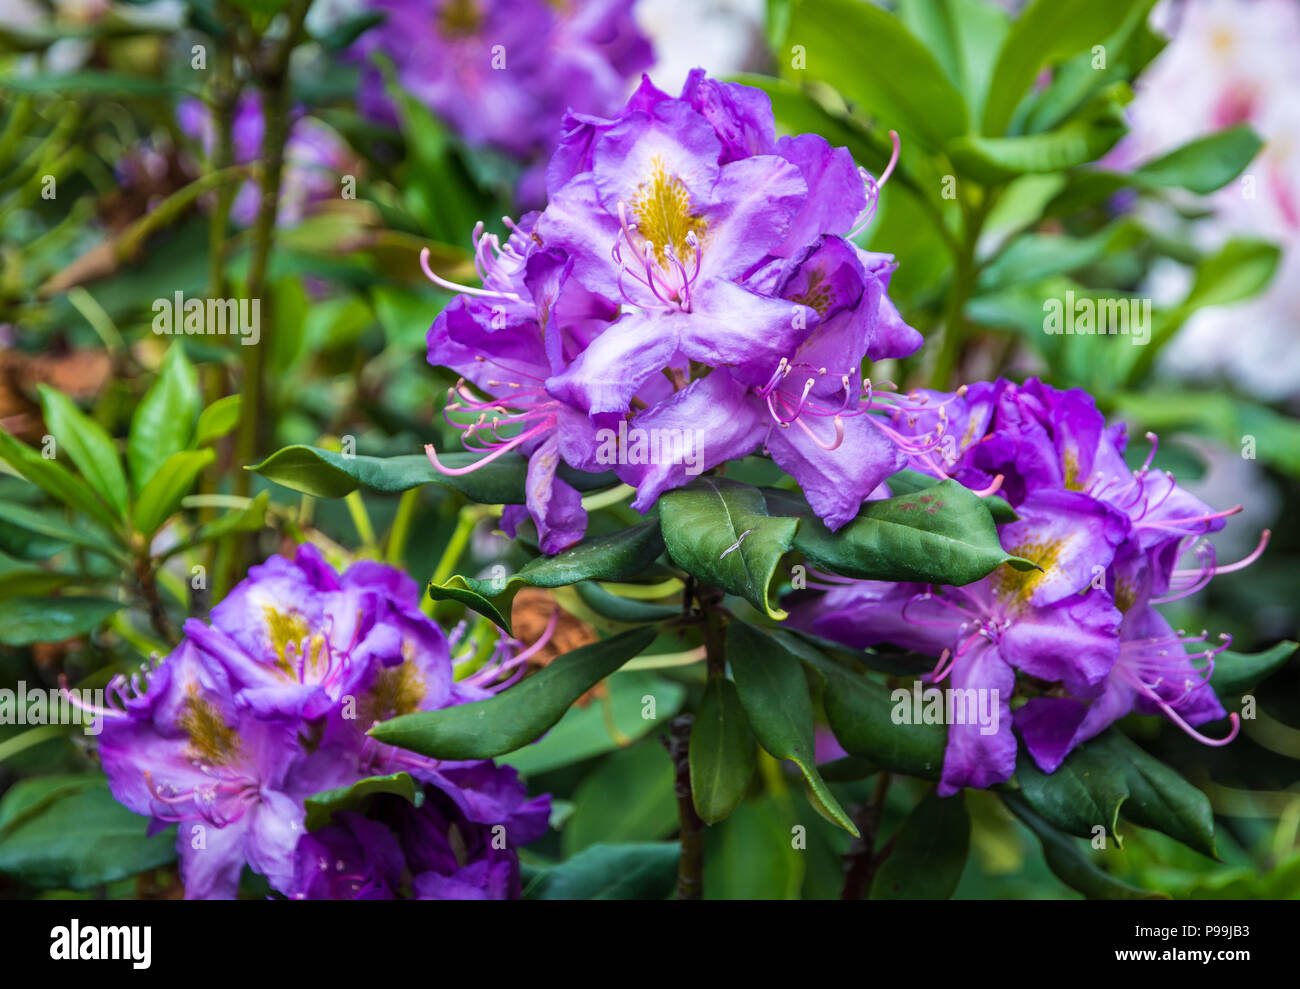 Rhododendron tree flowers.(Rhododendron arboreum). Blue Baron flowers of Rhododendrum tree. Purple flowers fo rhododendron tree. - Stock Image